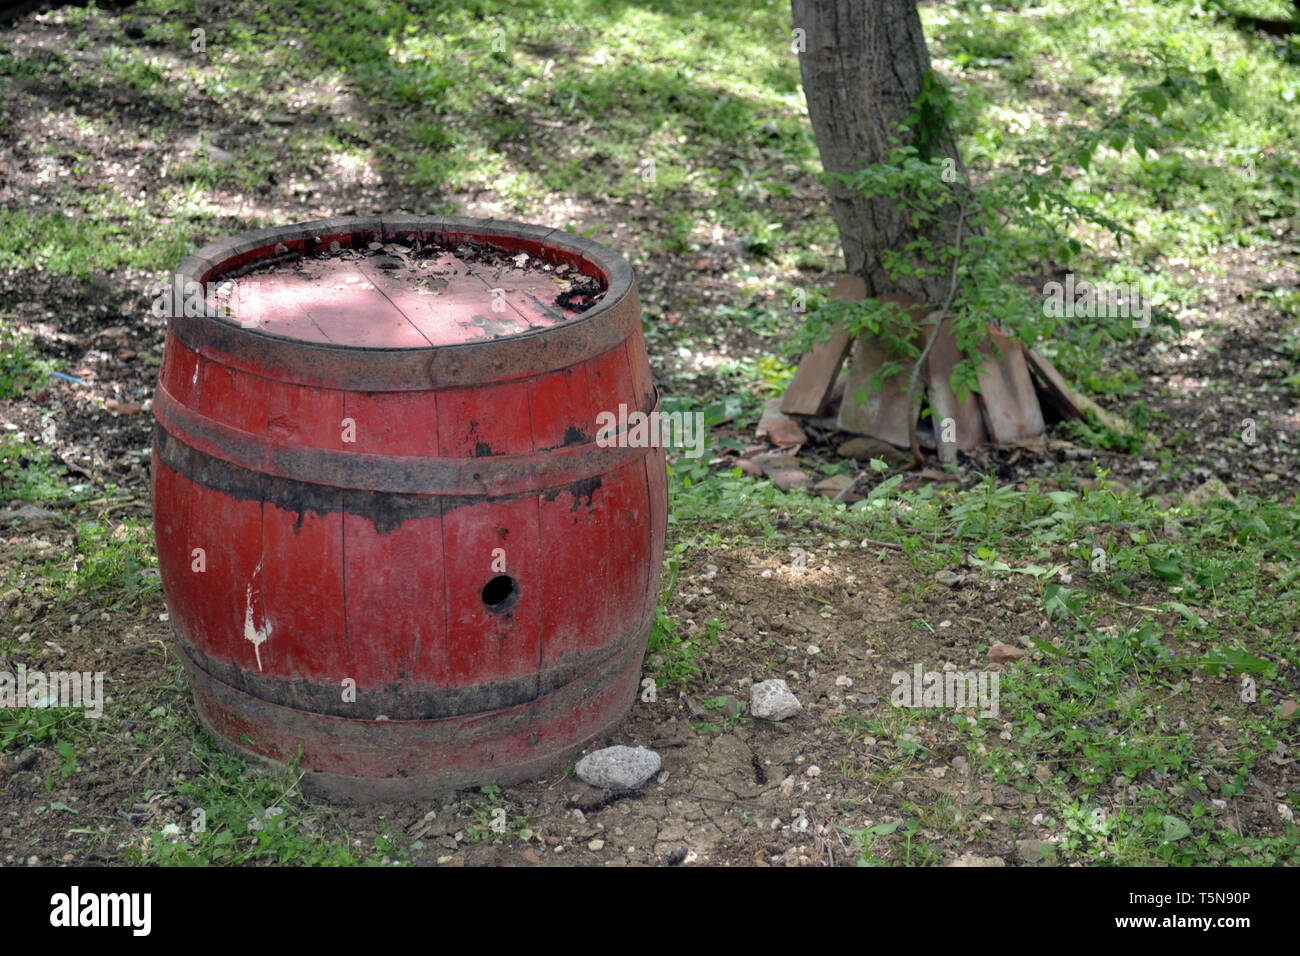 Ancient red barrel used for storing vine in rural part of the country - Stock Image